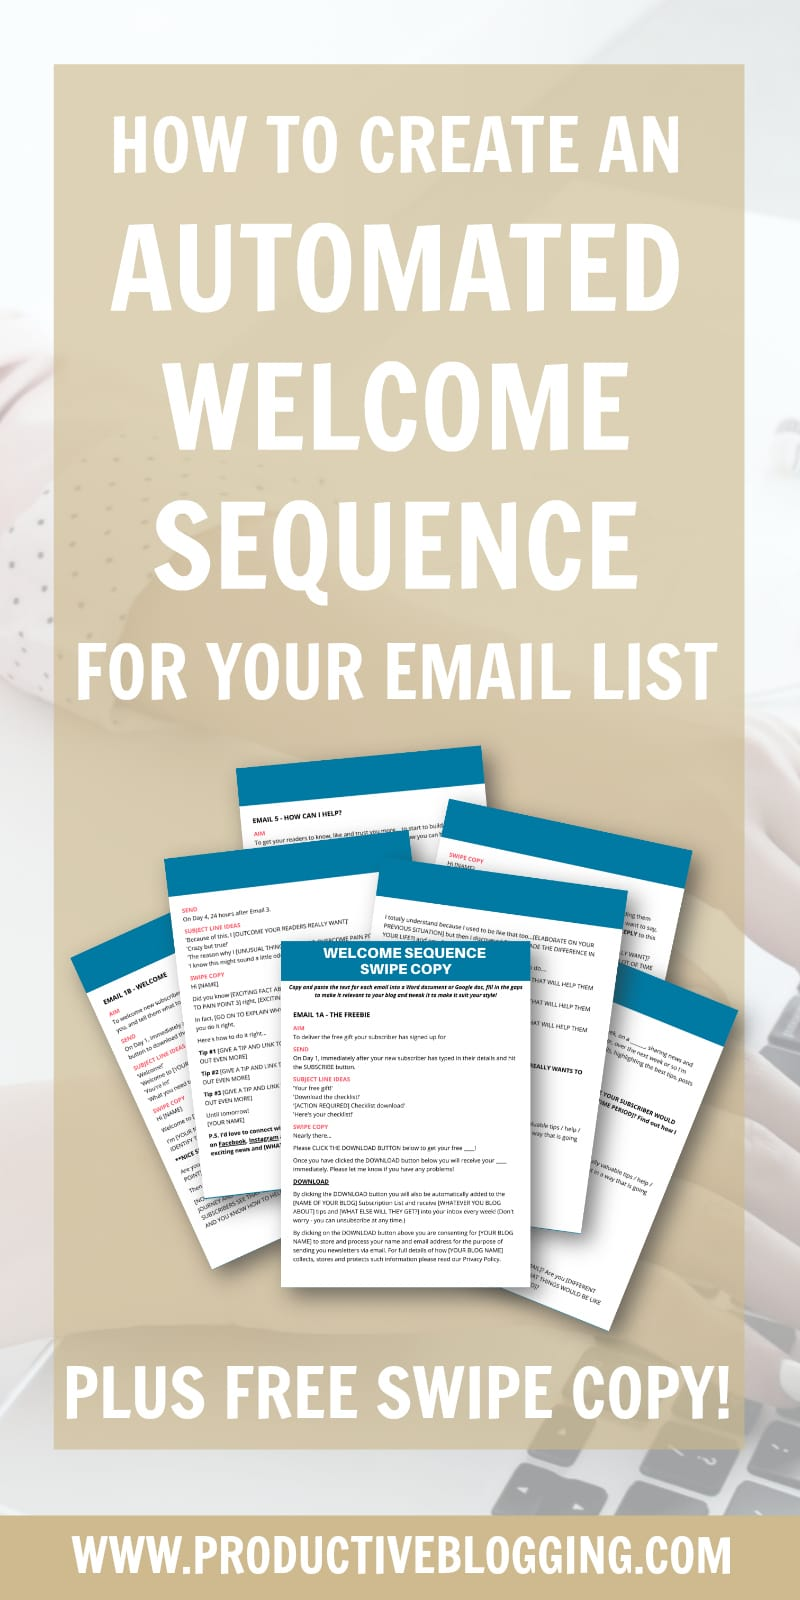 When new subscribers join your list, it's good to welcome them properly…before they forget why they signed up for your list and click 'unsubscribe'… Here's how to create an automated welcome sequence for your email list. #welcomesequence #emailwelcomesequence #autoresponser #nurturesequence #emailmarketing #growyouremaillist #emailmarketingtips #emaillist #emaillistgrowth #listbuilding #subscribers #convertkit #growyourblog #bloggrowth #productivitytips #bloggingtips #productiveblogging